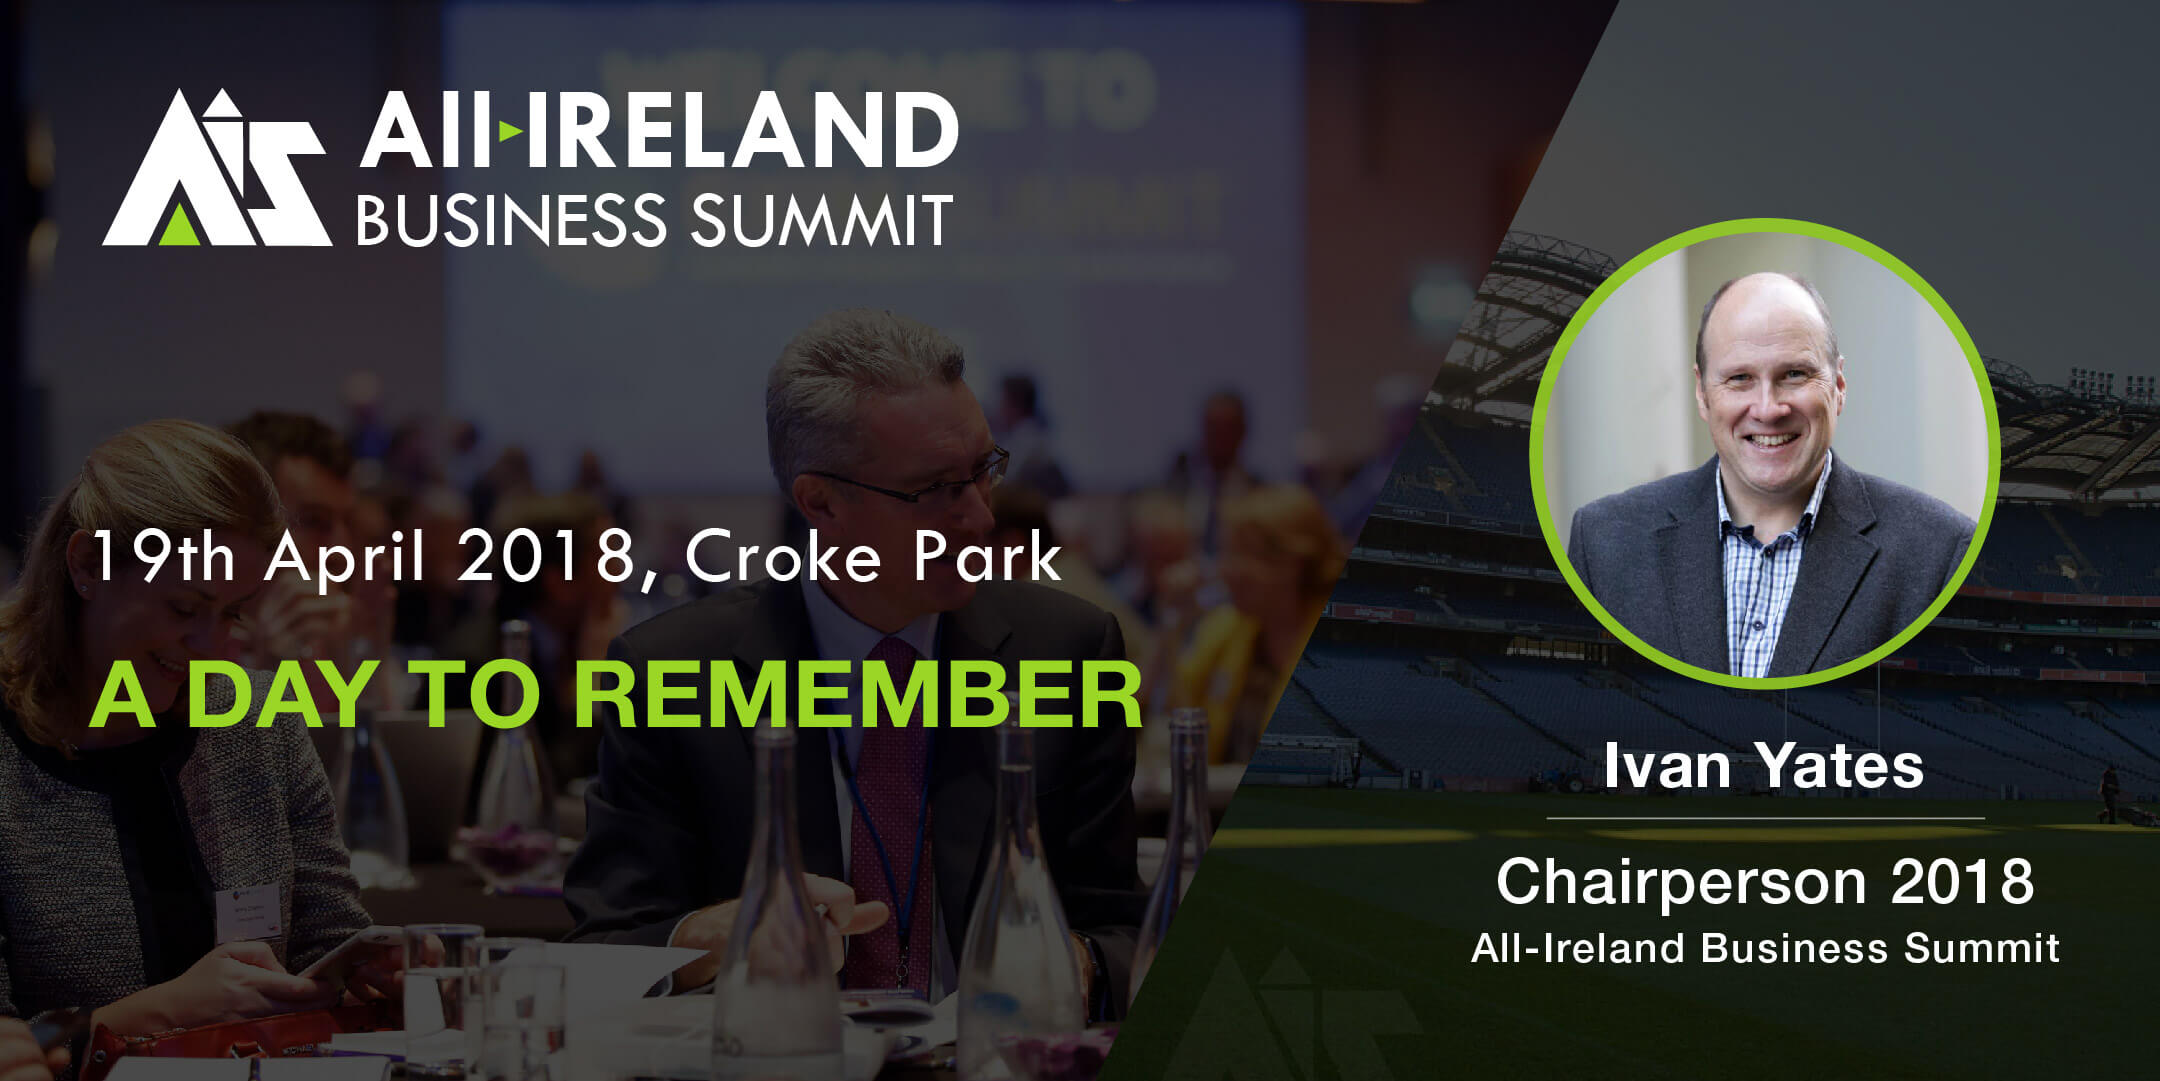 Chairperson, All-Ireland Business Summit